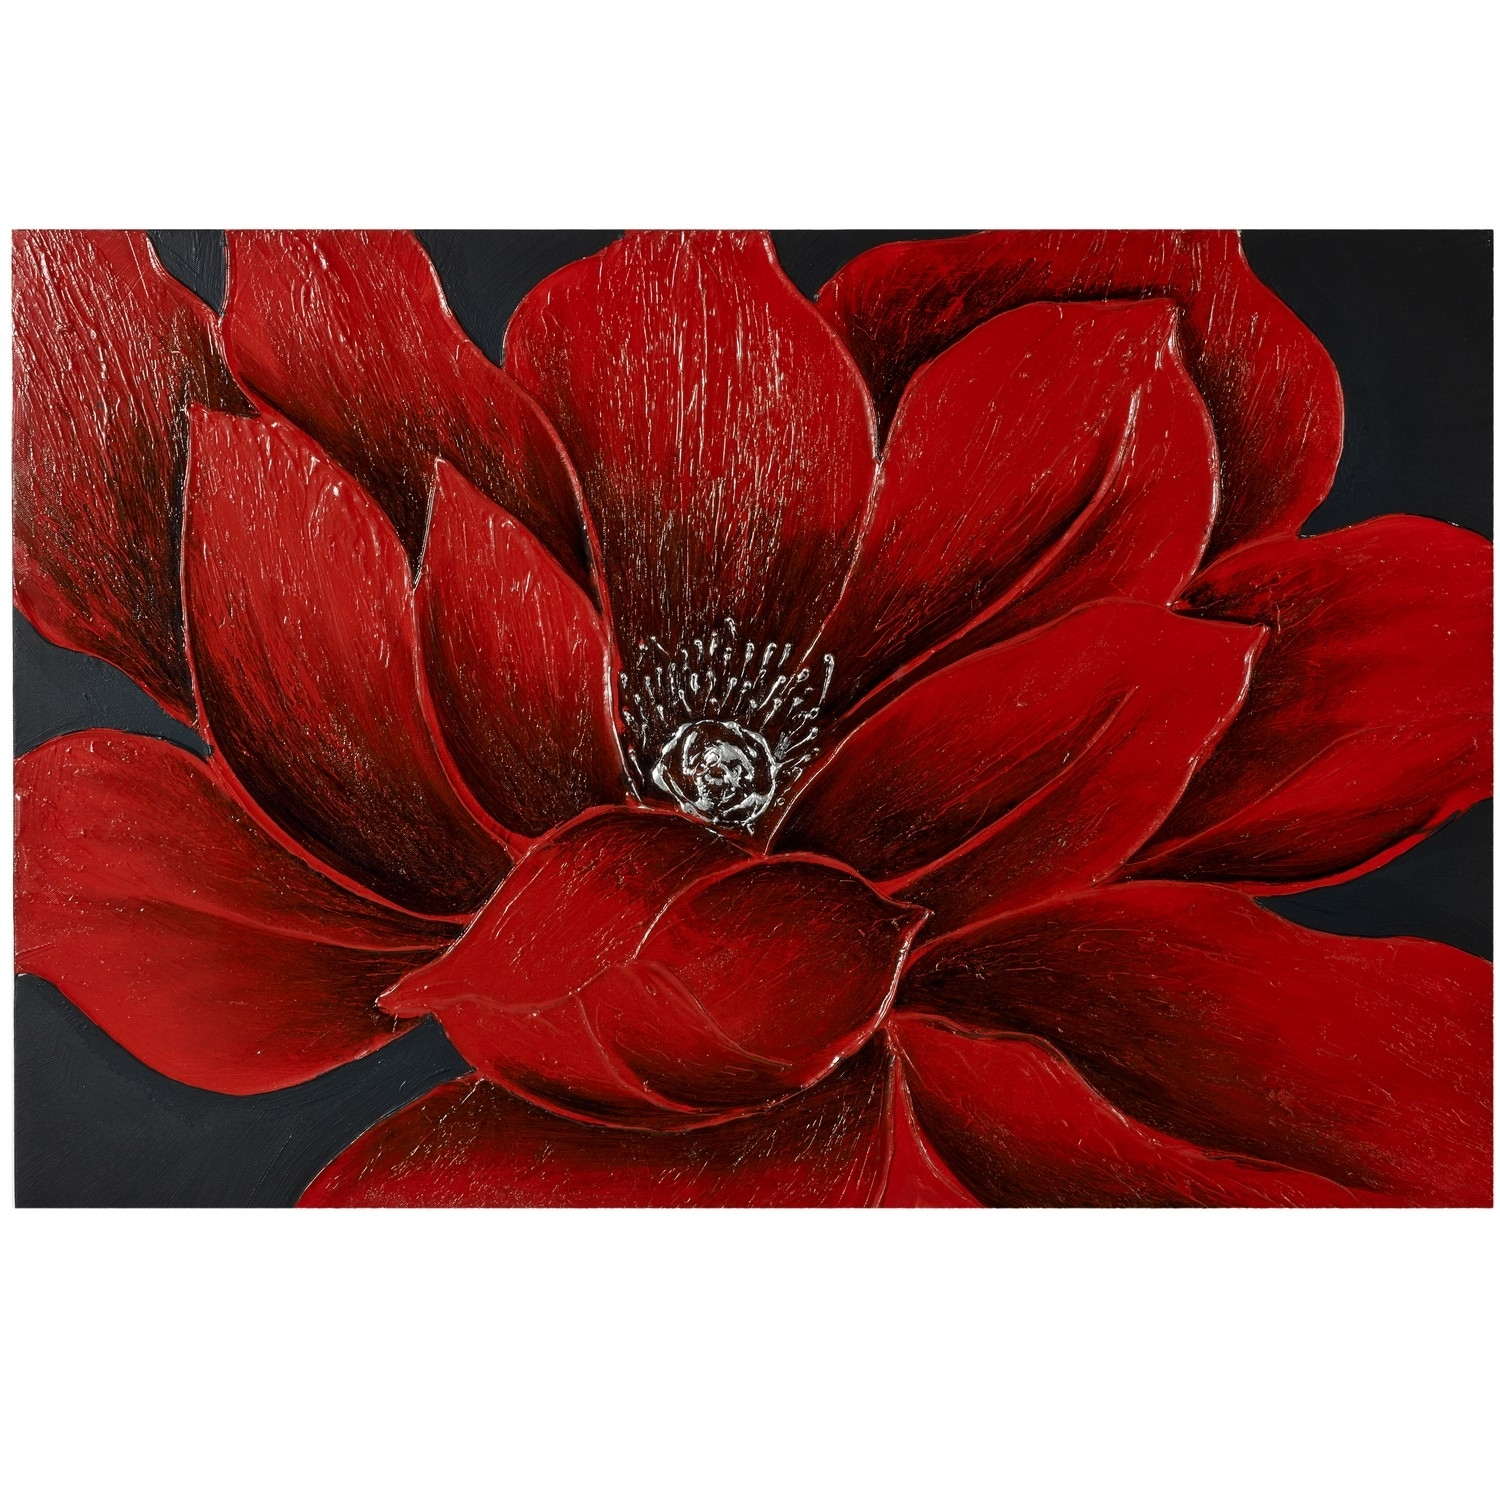 Wall Art: Beautiful Images About Red Flower Canvas Wall Art Large Throughout Newest Large Red Canvas Wall Art (View 13 of 15)